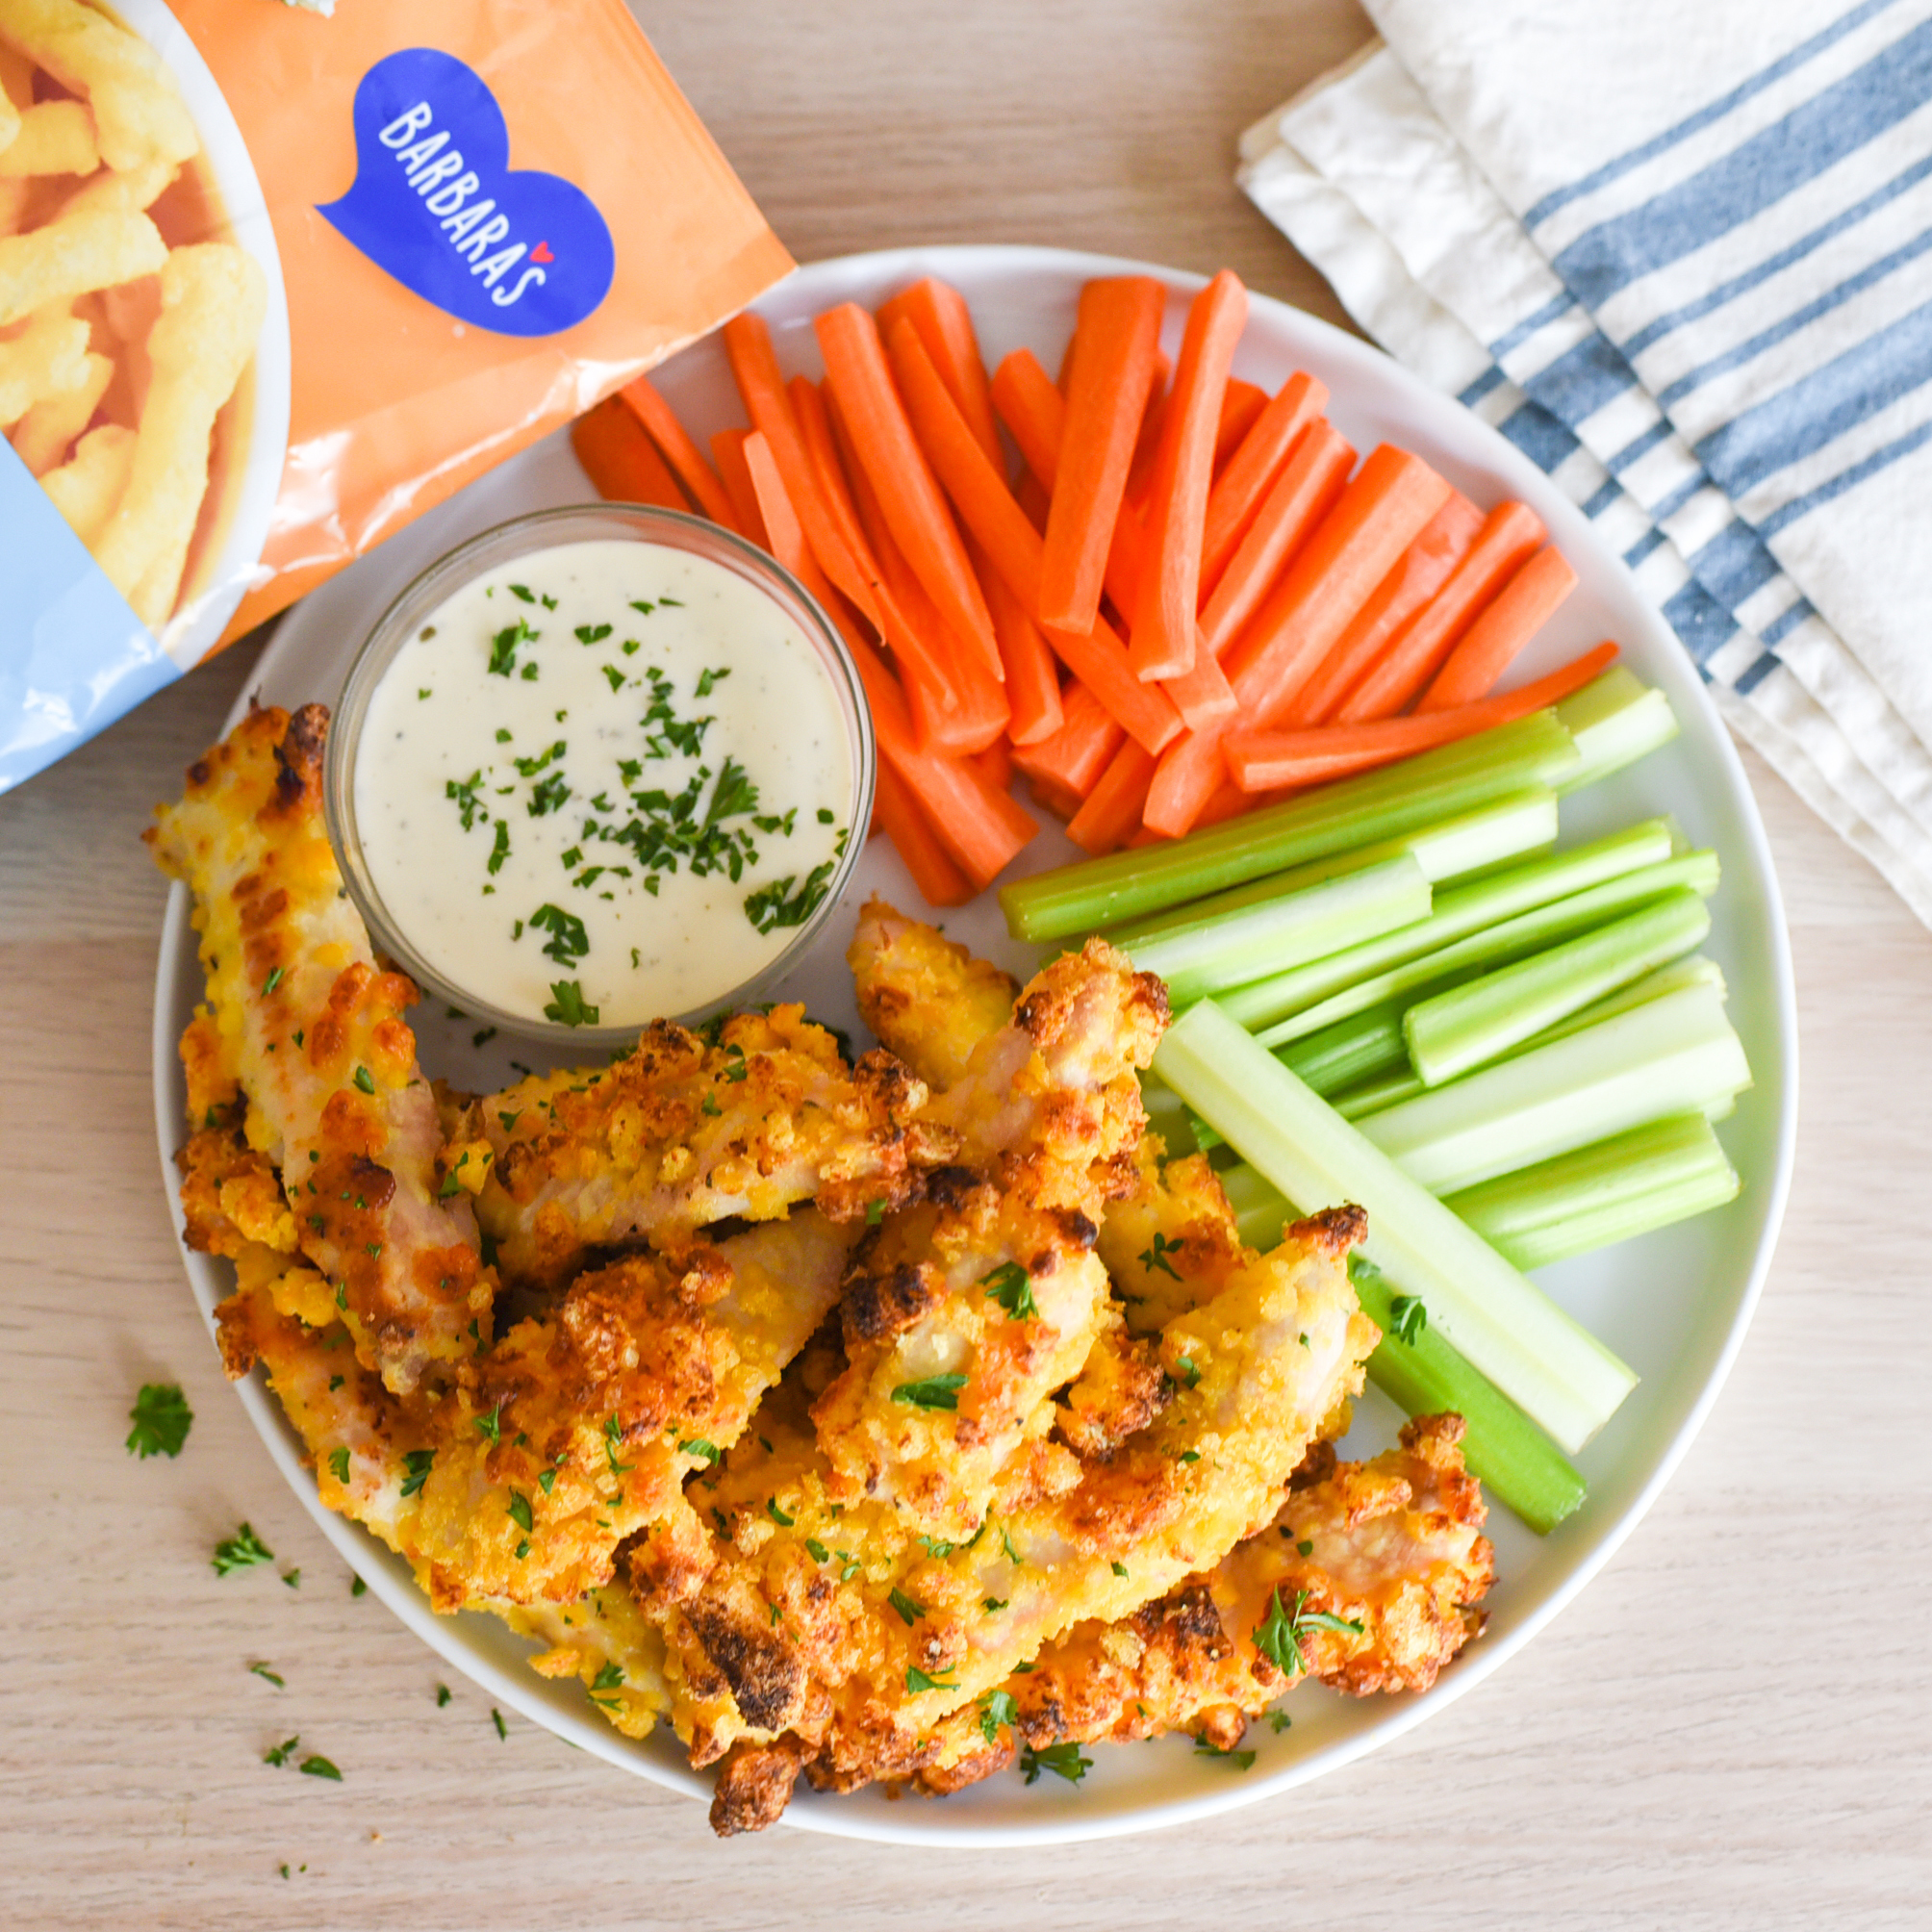 Chicken Tenders with Cheese Puffs